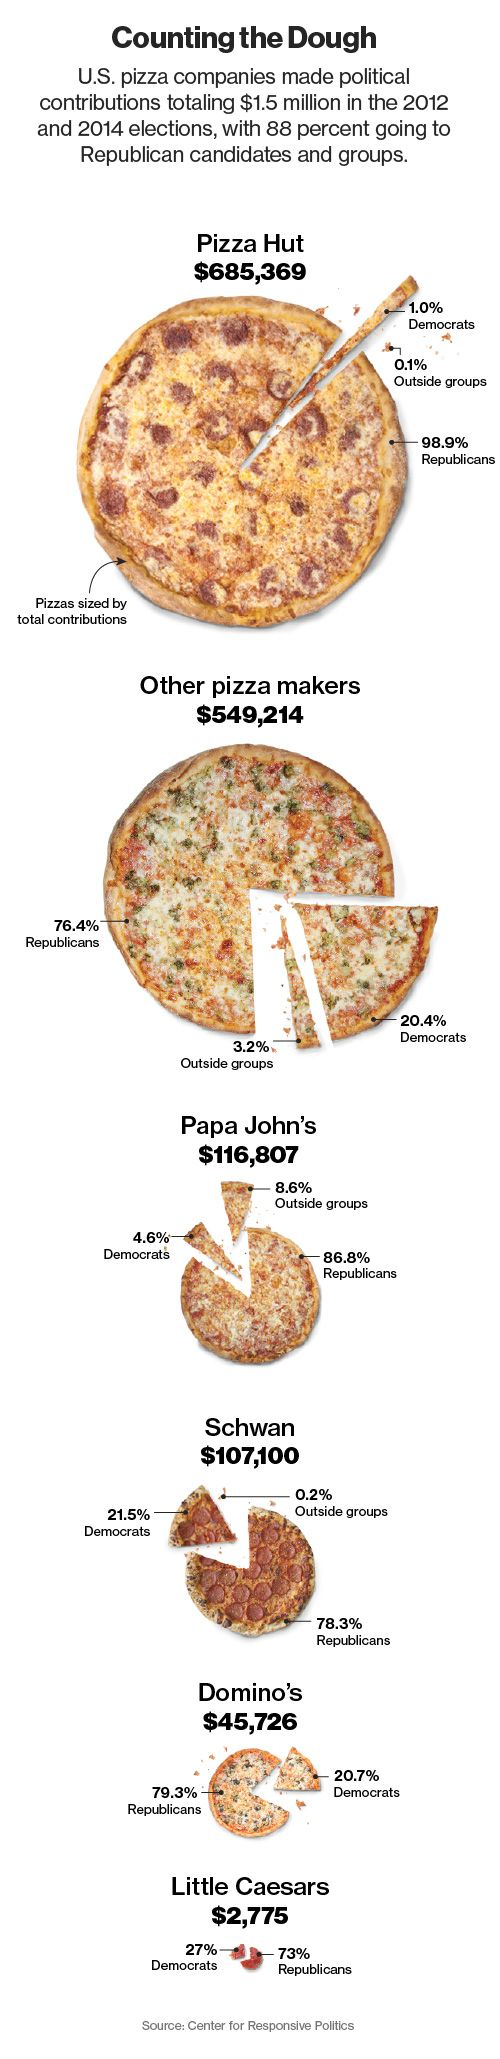 Junk Food's Last Stand: The Pizza Lobby Is Not Backing Down - Bloomberg Business